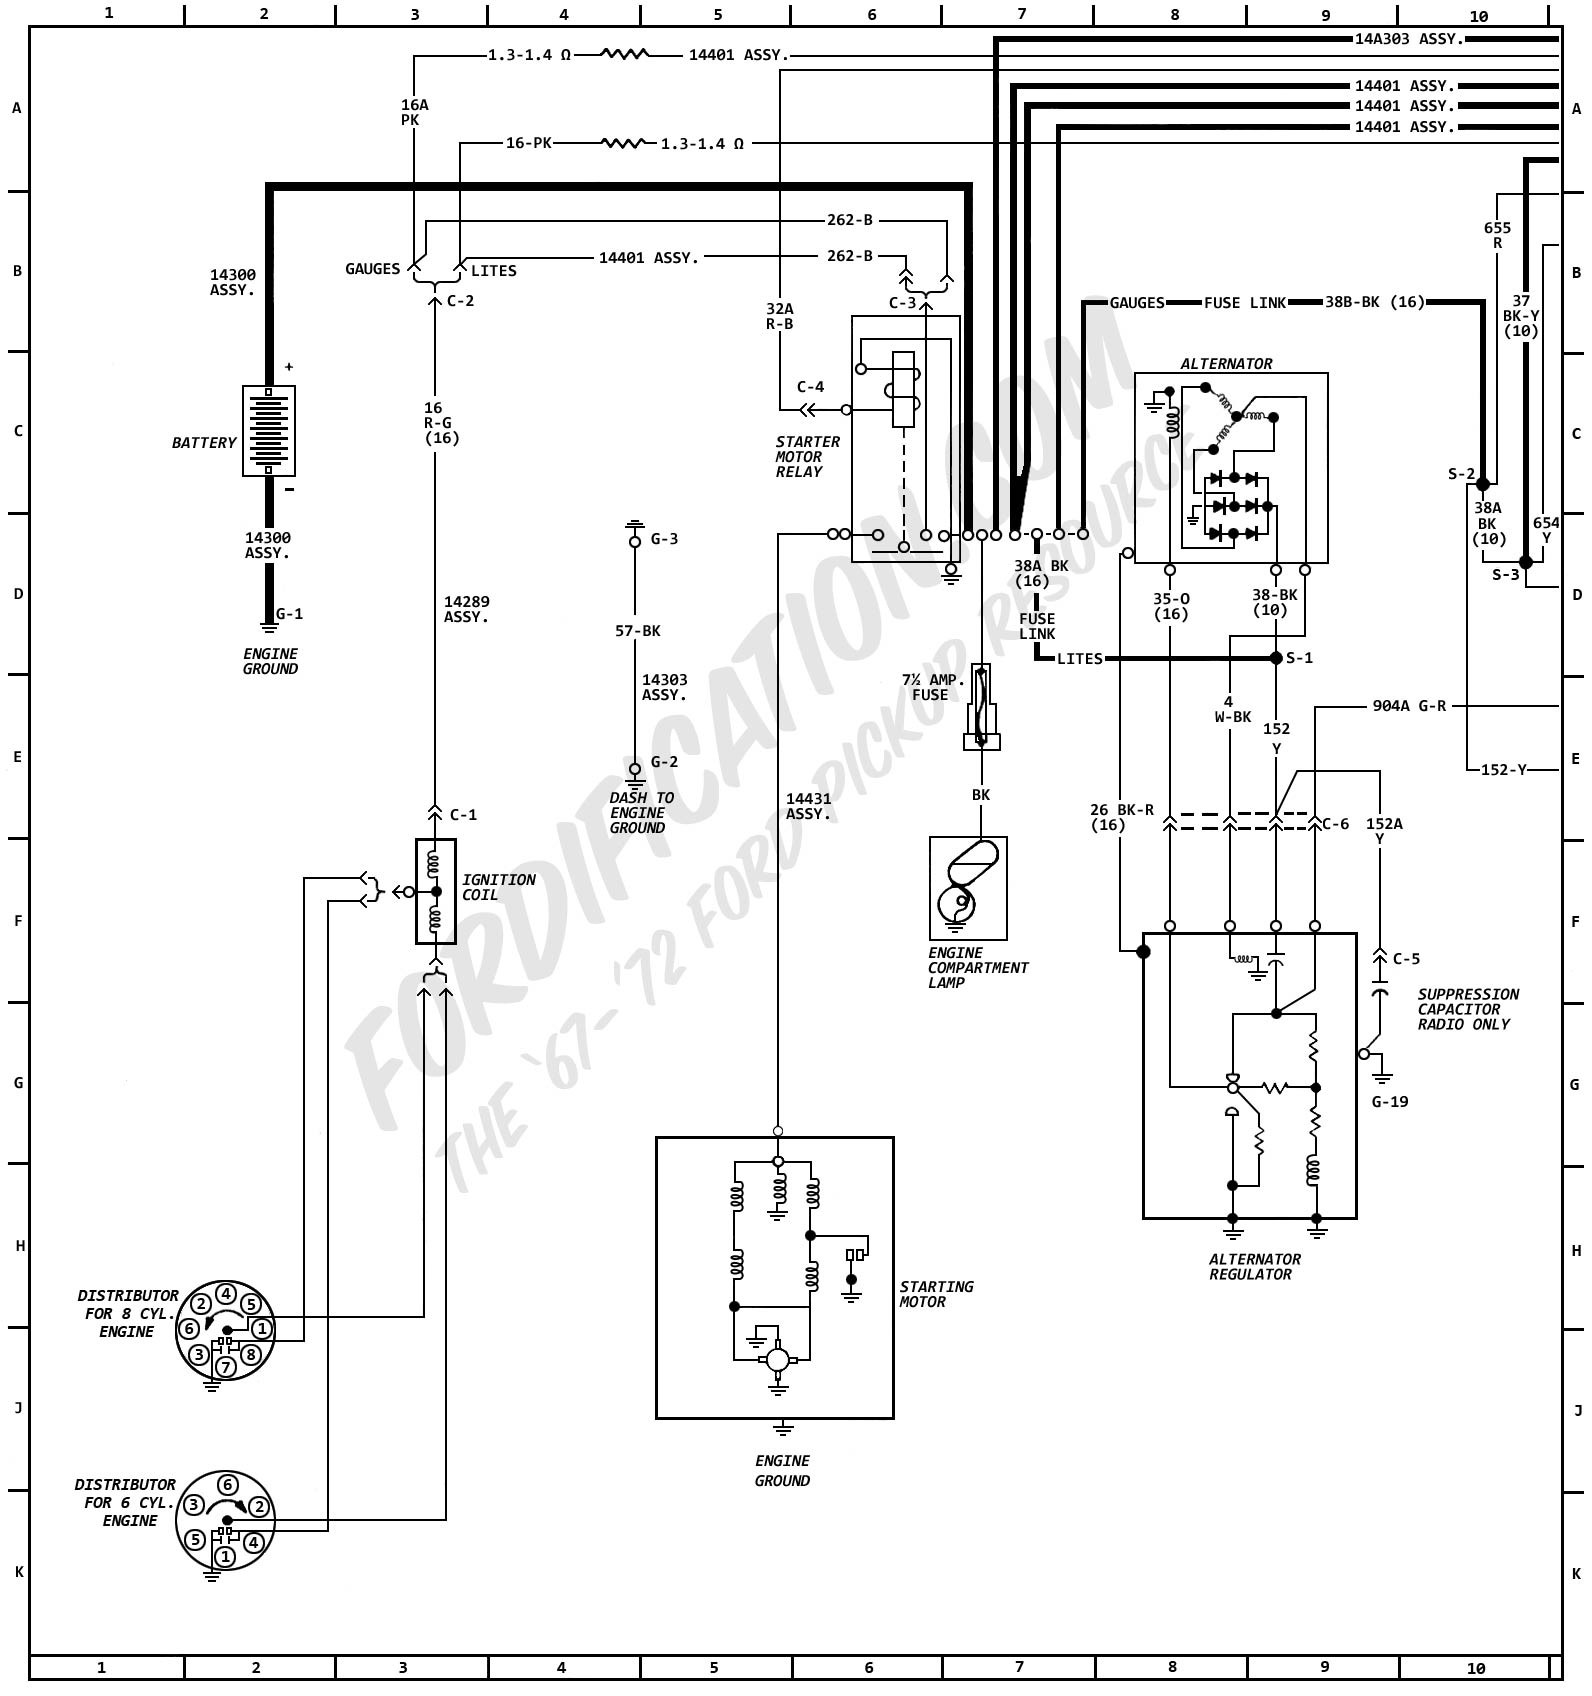 Man Truck Electrical Wiring Diagram 1968 ford Ranger solenoid Wiring Wiring Data Of Man Truck Electrical Wiring Diagram